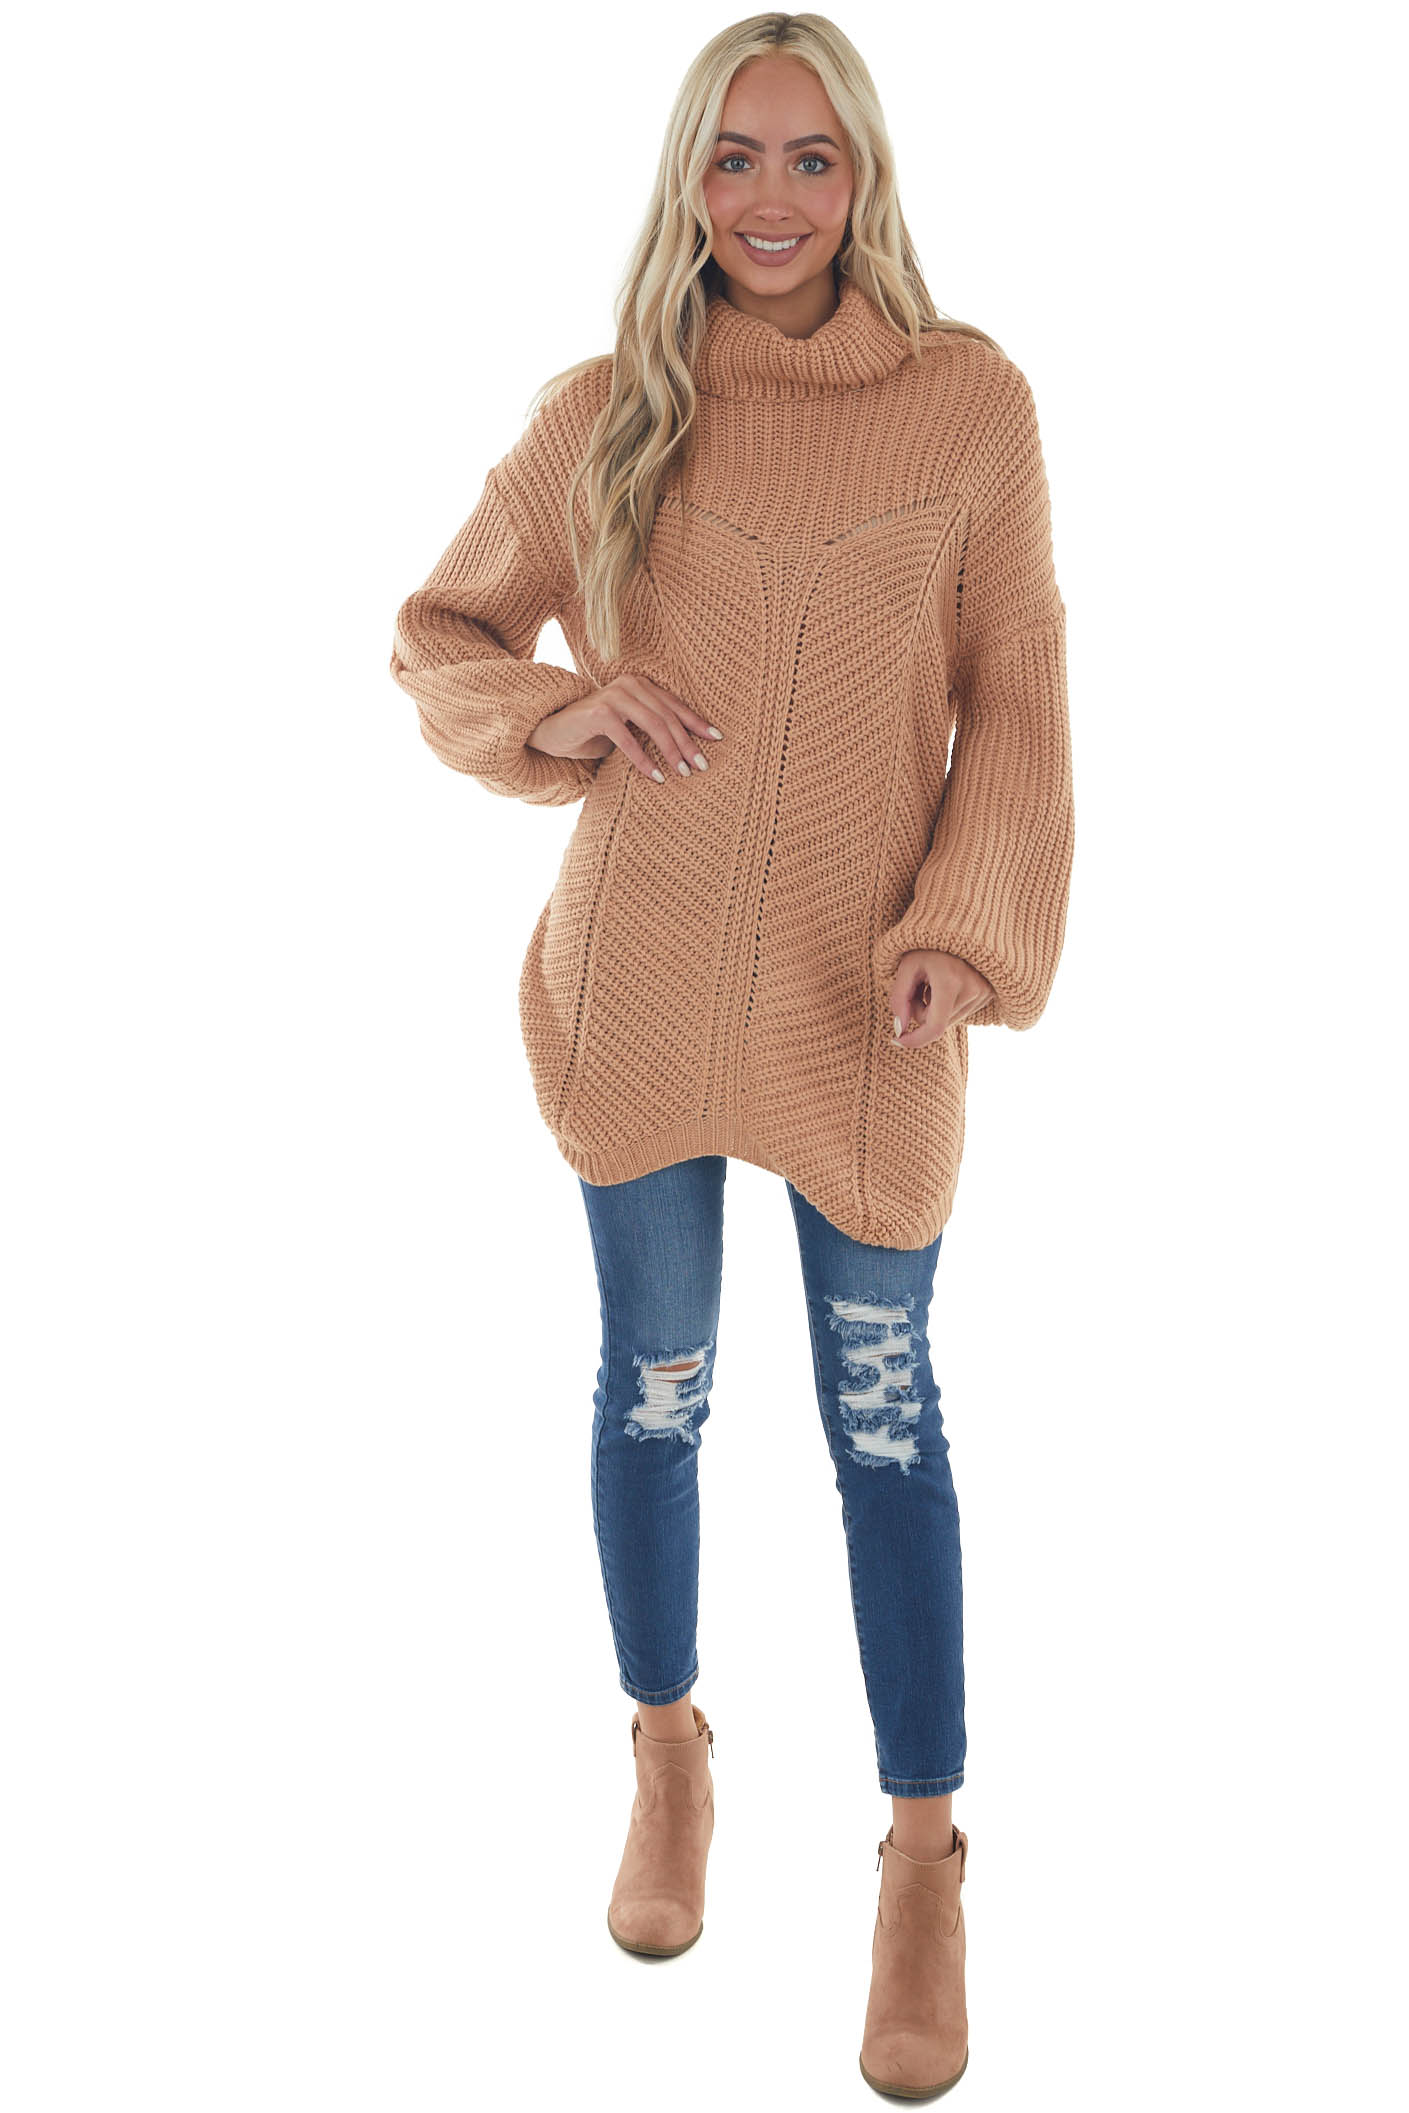 Apricot Cowl Neck Sweater with Bubble Sleeves